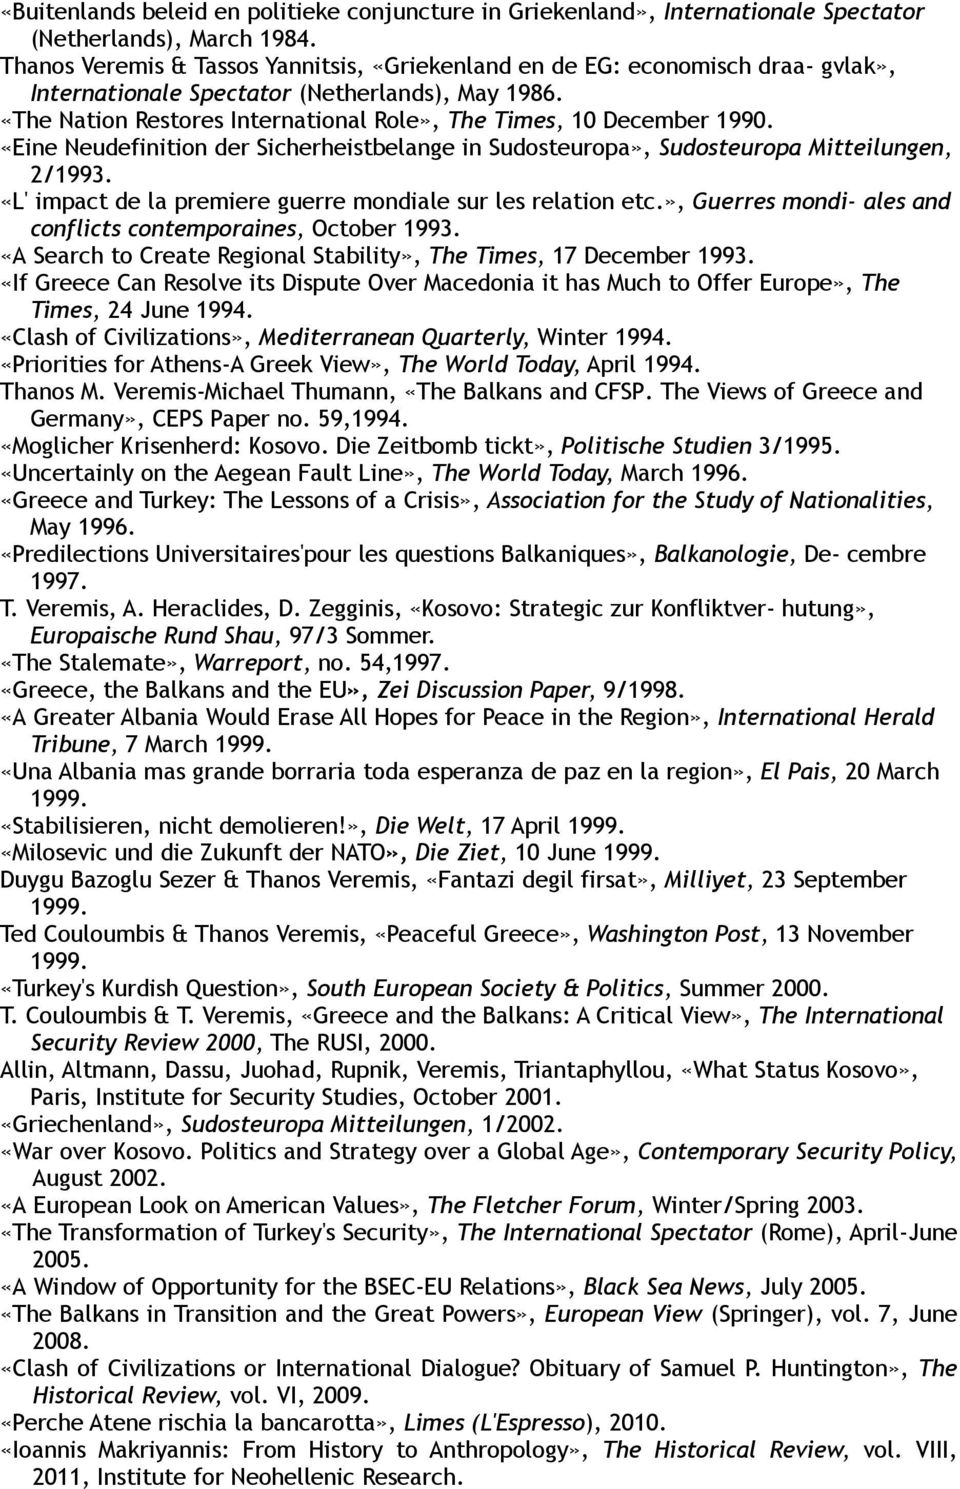 «The Nation Restores International Role», The Times, 10 December 1990. «Eine Neudefinition der Sicherheistbelange in Sudosteuropa», Sudosteuropa Mitteilungen, 2/1993.